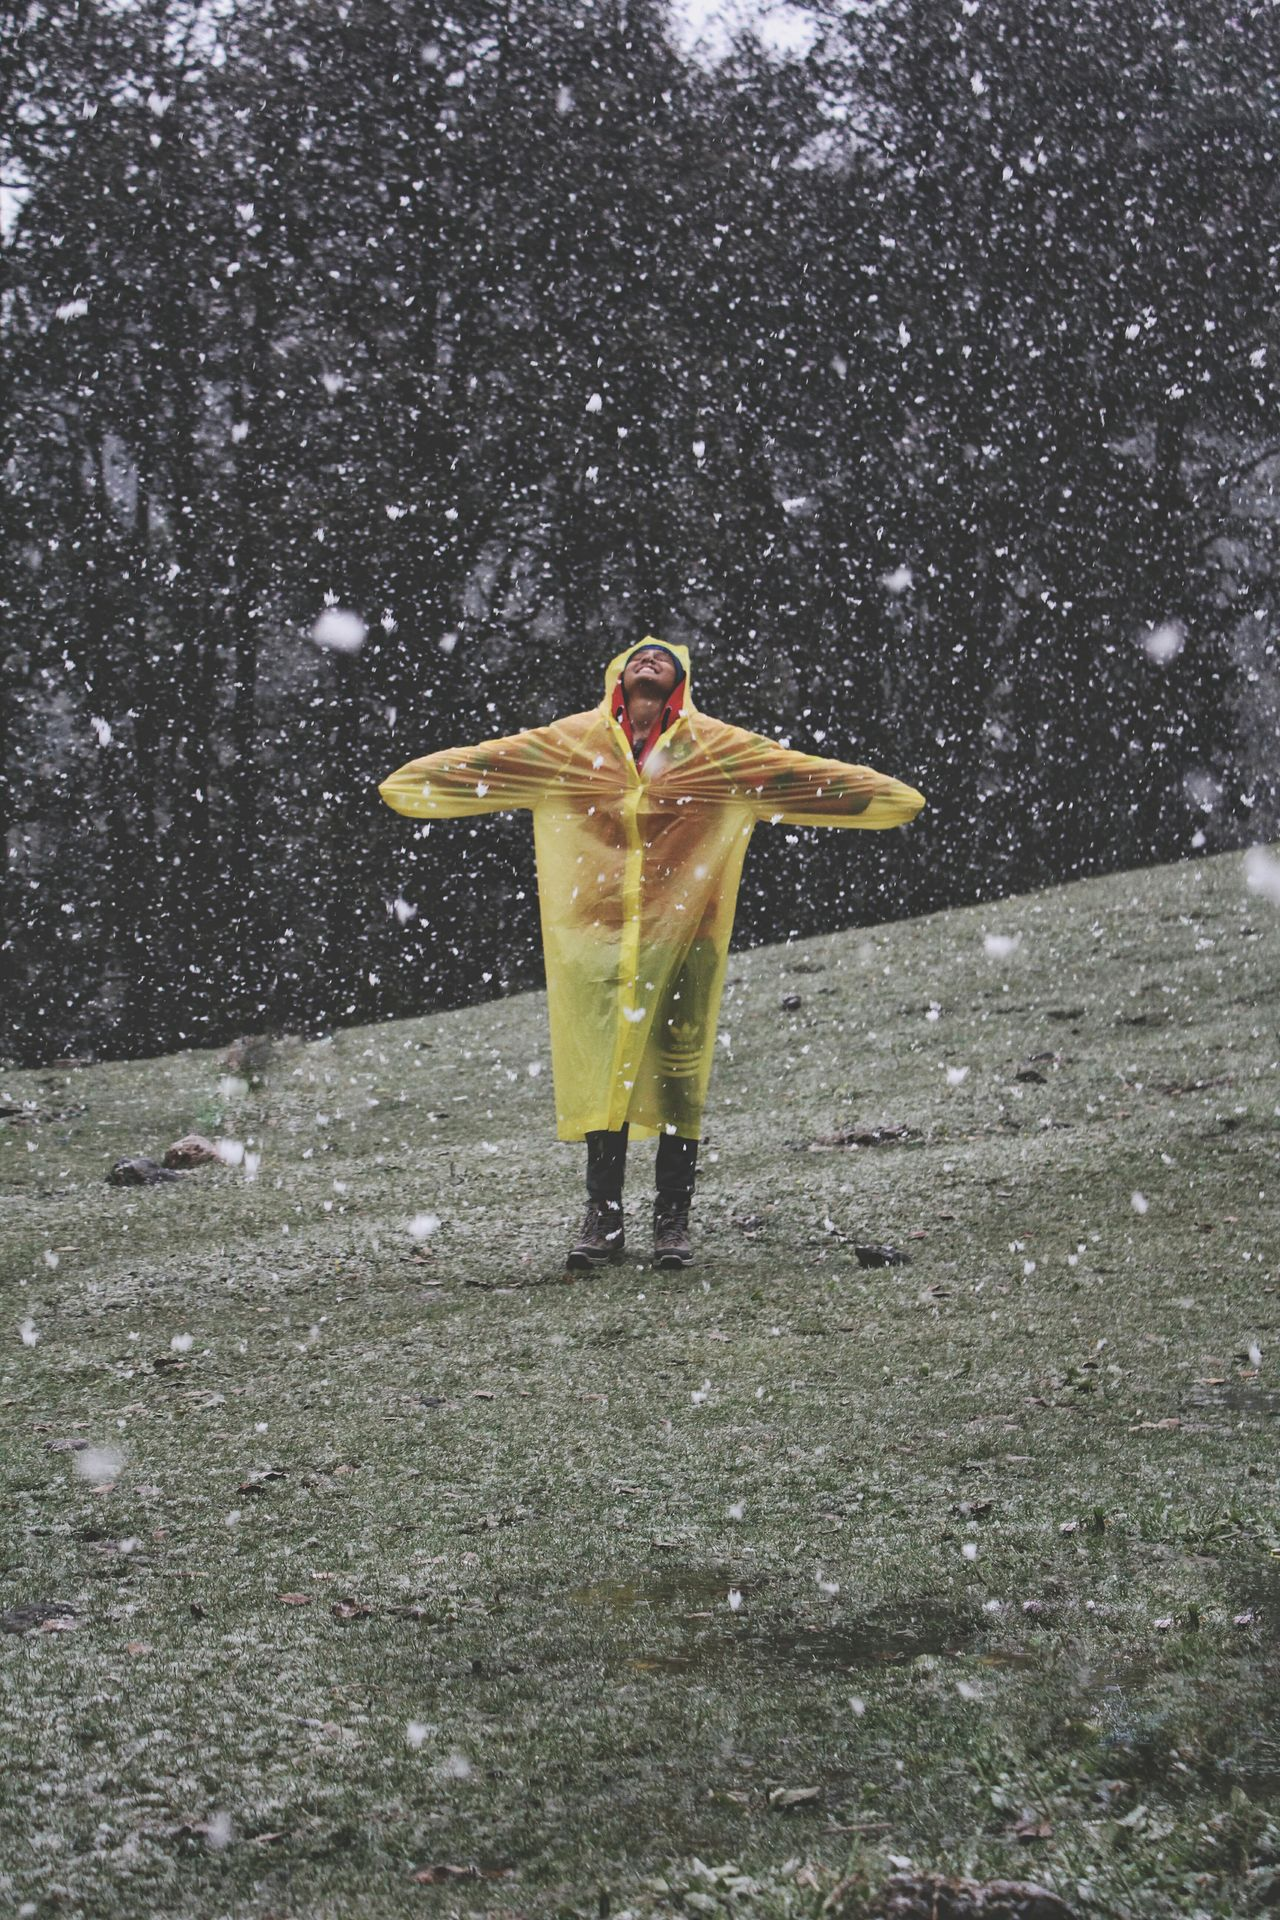 Young man with arms outstretched standing in snowfall